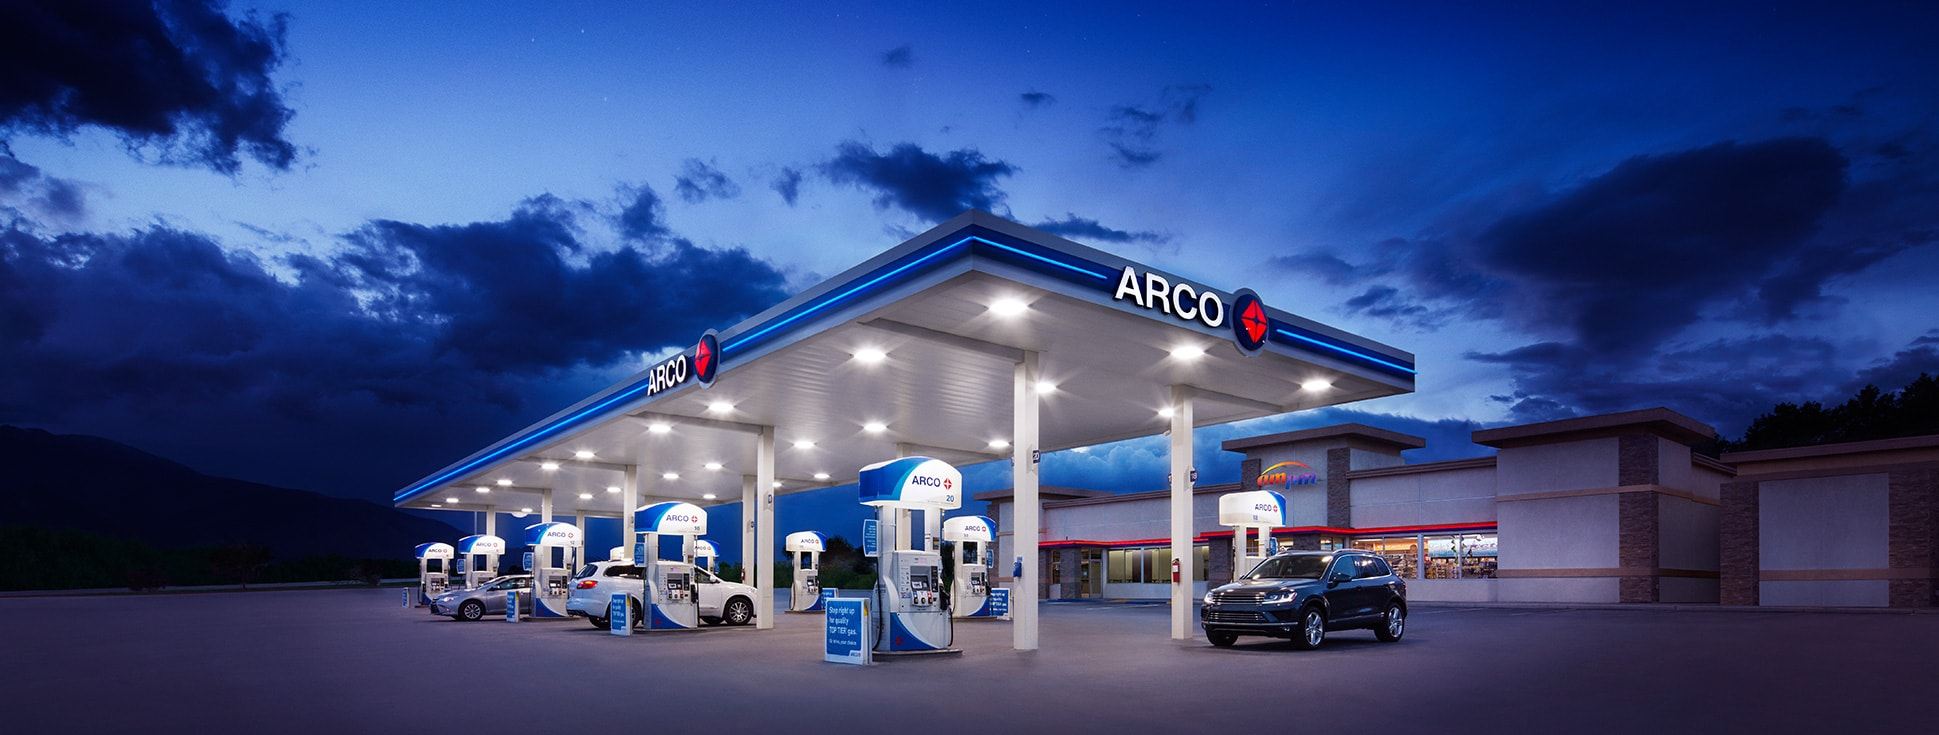 Arco Gas >> Arco Gas Stations Quality Top Tier Gas For Less